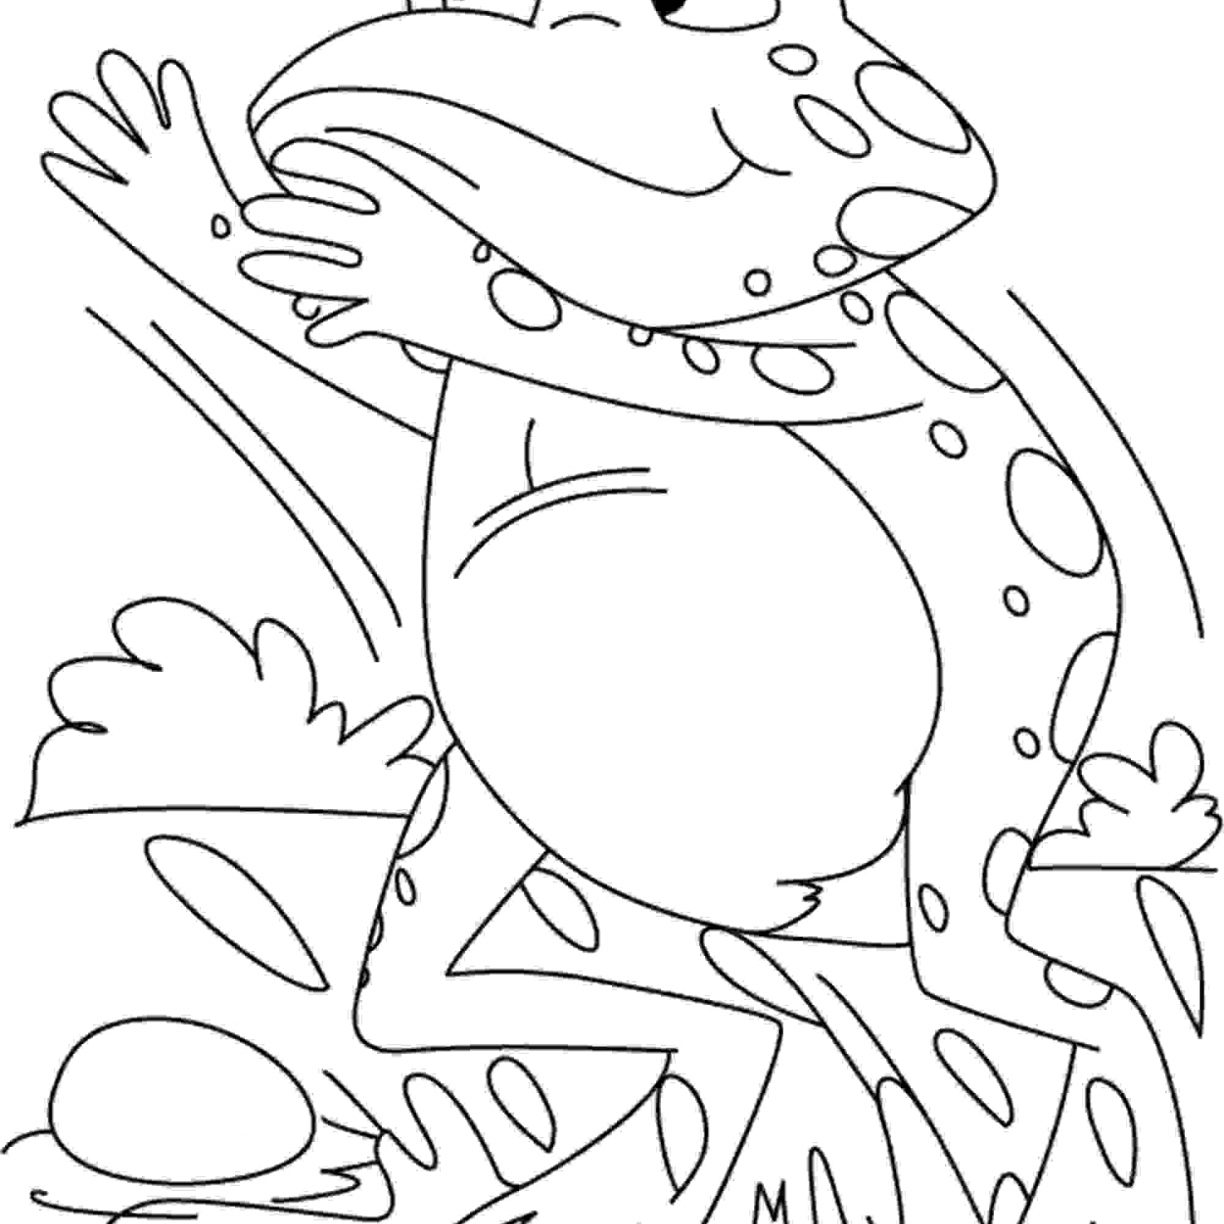 green tree frog coloring page tree frog png black and white transparent tree frog black coloring green tree frog page